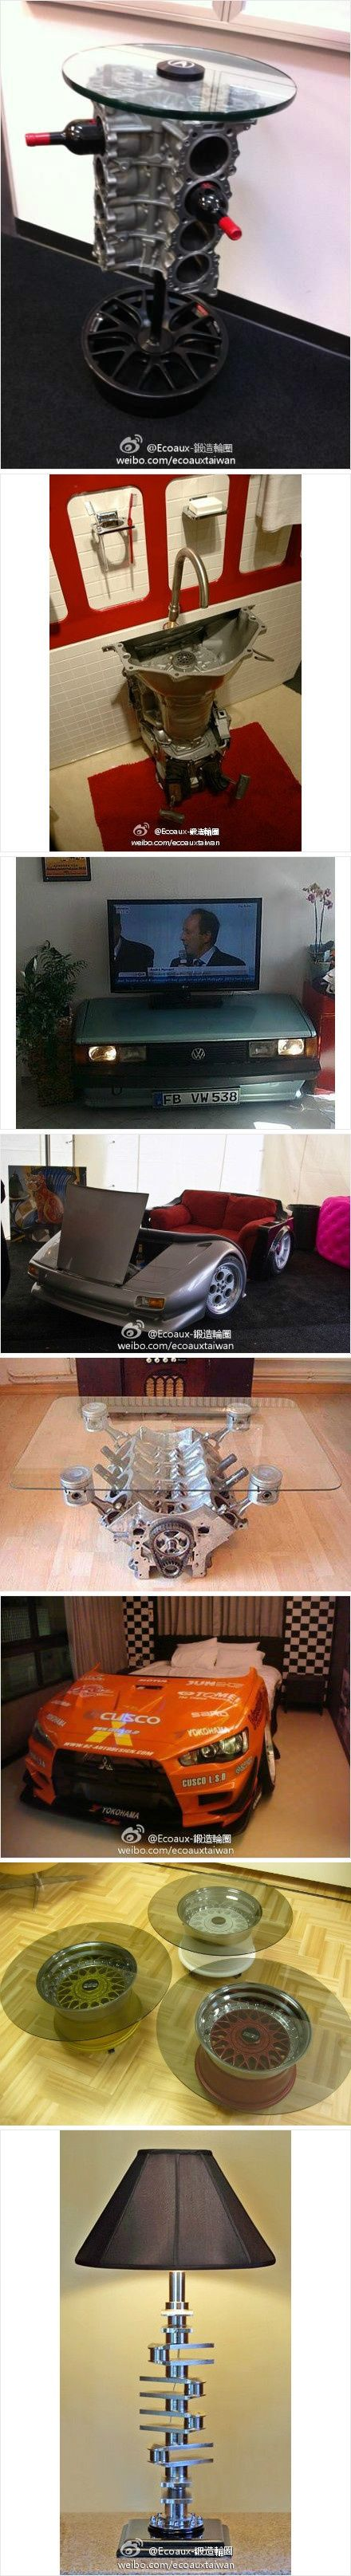 interesting new ways to use old car parts